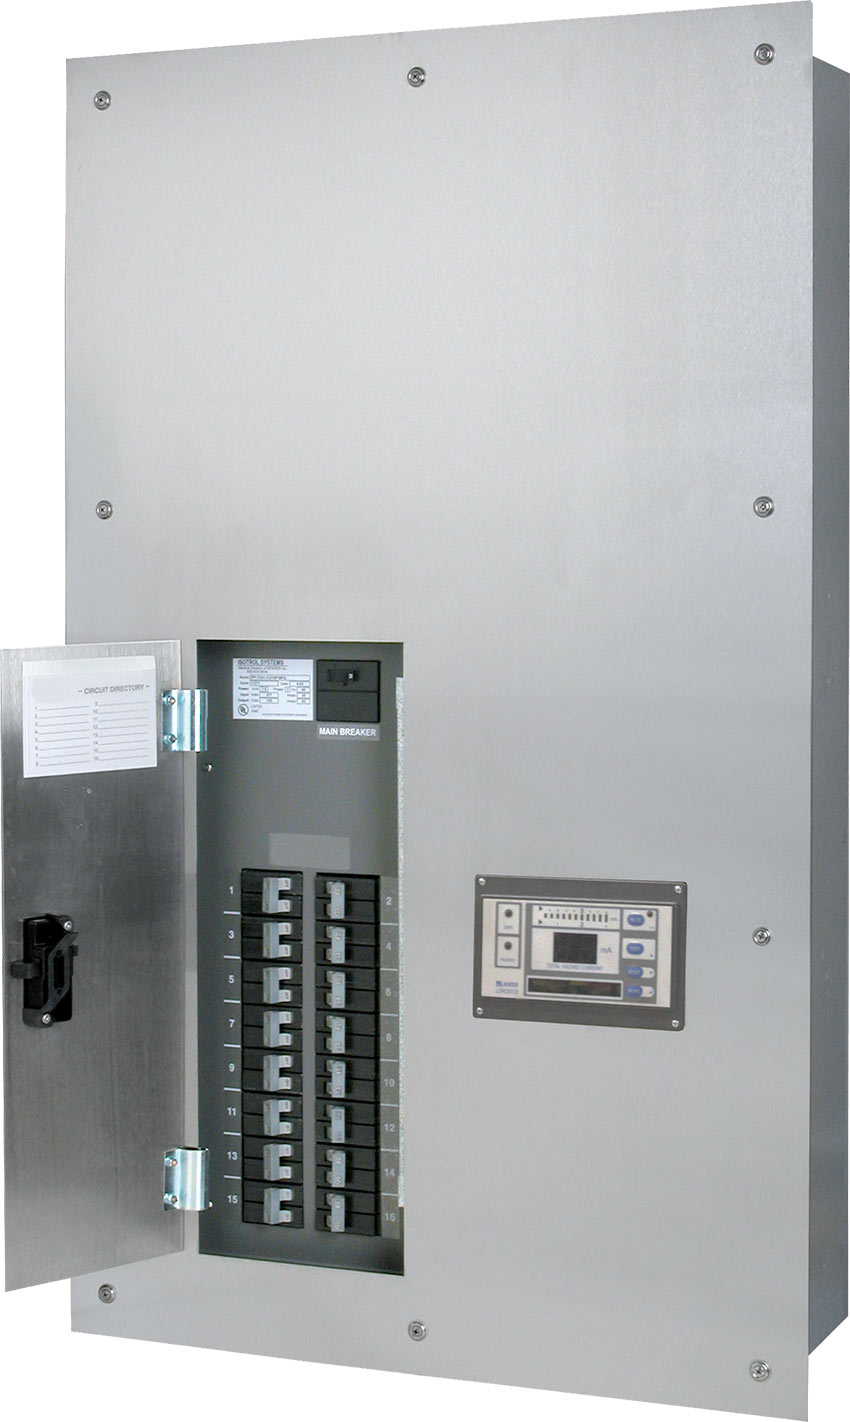 Isolated Power Panels - Bender on plc diagram, grounding diagram, rslogix diagram, troubleshooting diagram, drilling diagram, installation diagram, panel wiring icon, solar panels diagram, telecommunications diagram, instrumentation diagram, electricians diagram, assembly diagram,